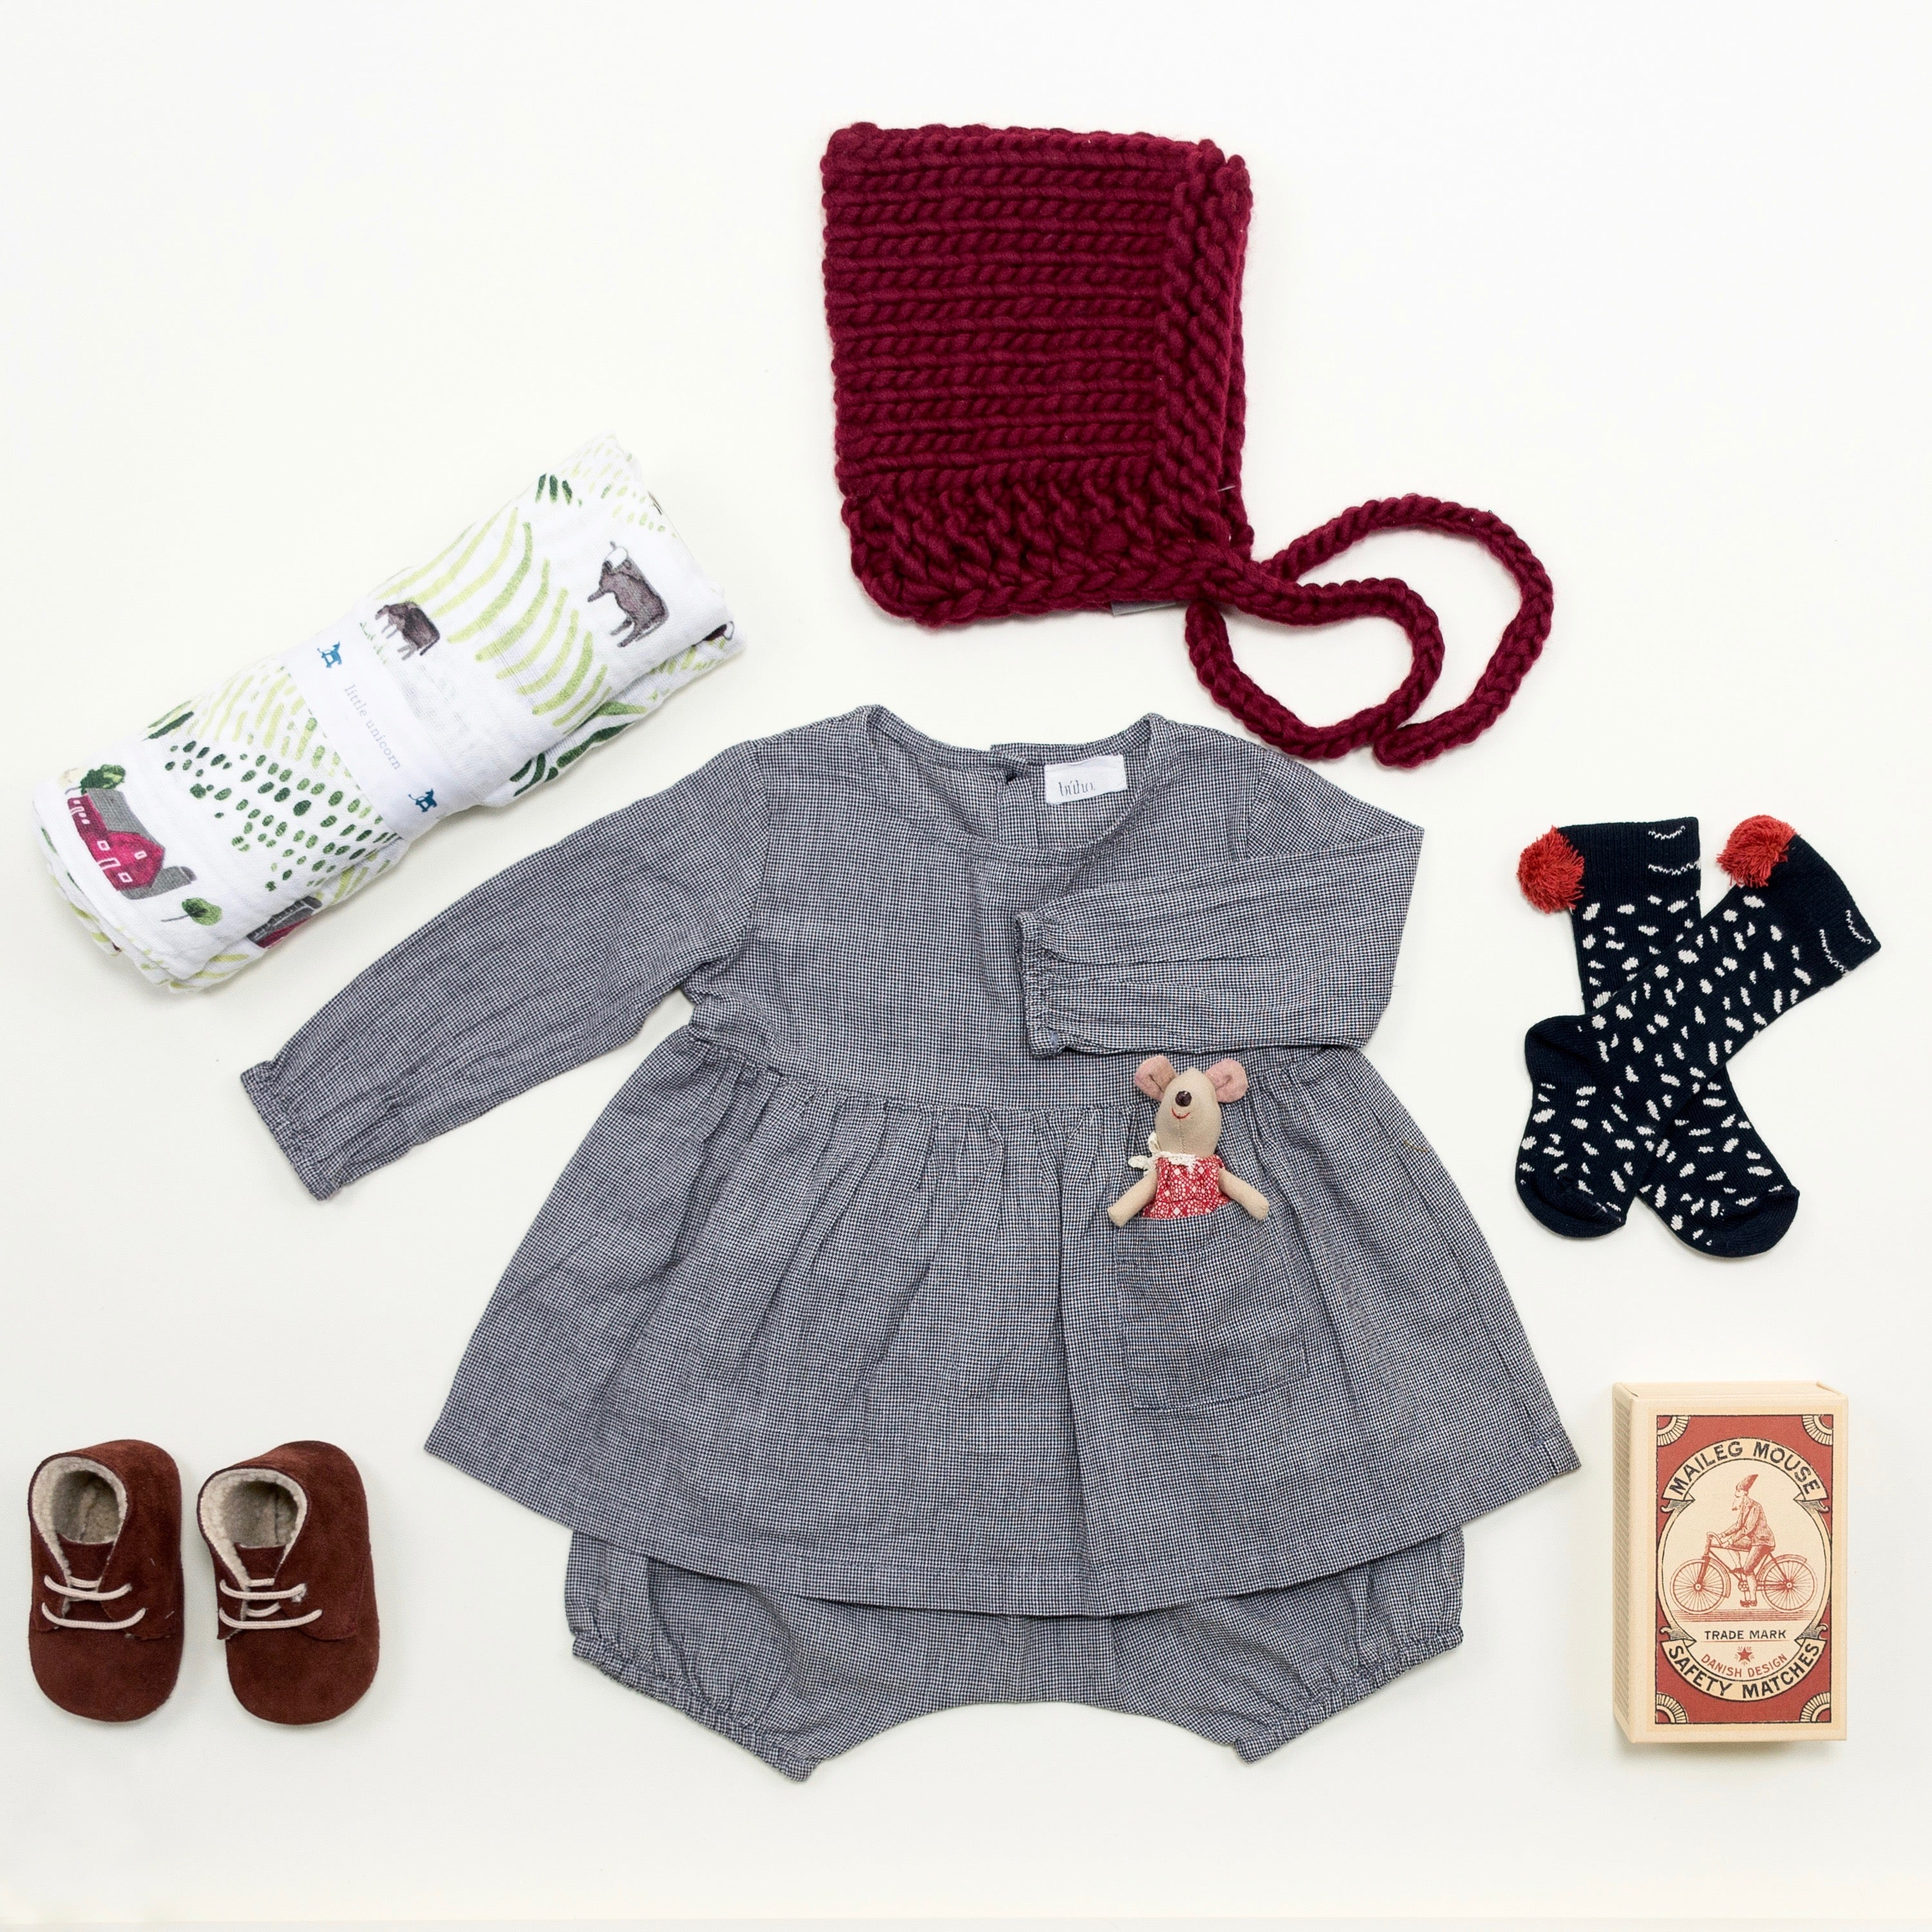 Fall baby girl outfit by Bonjour Baby Baskets